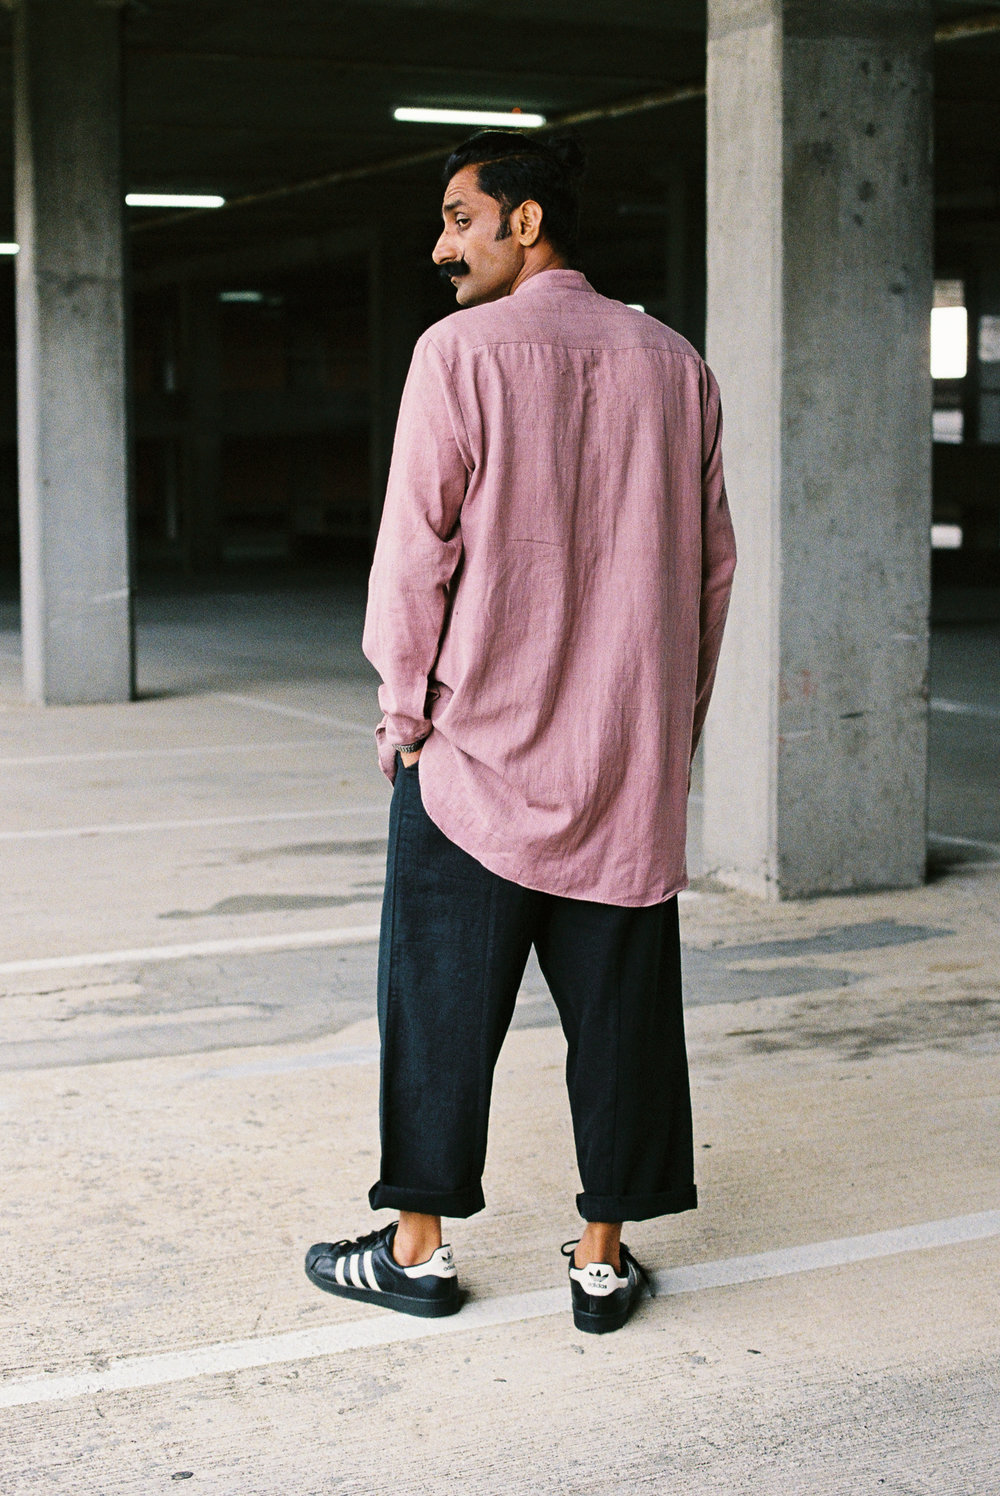 pinkshirtblackpants-1.jpg